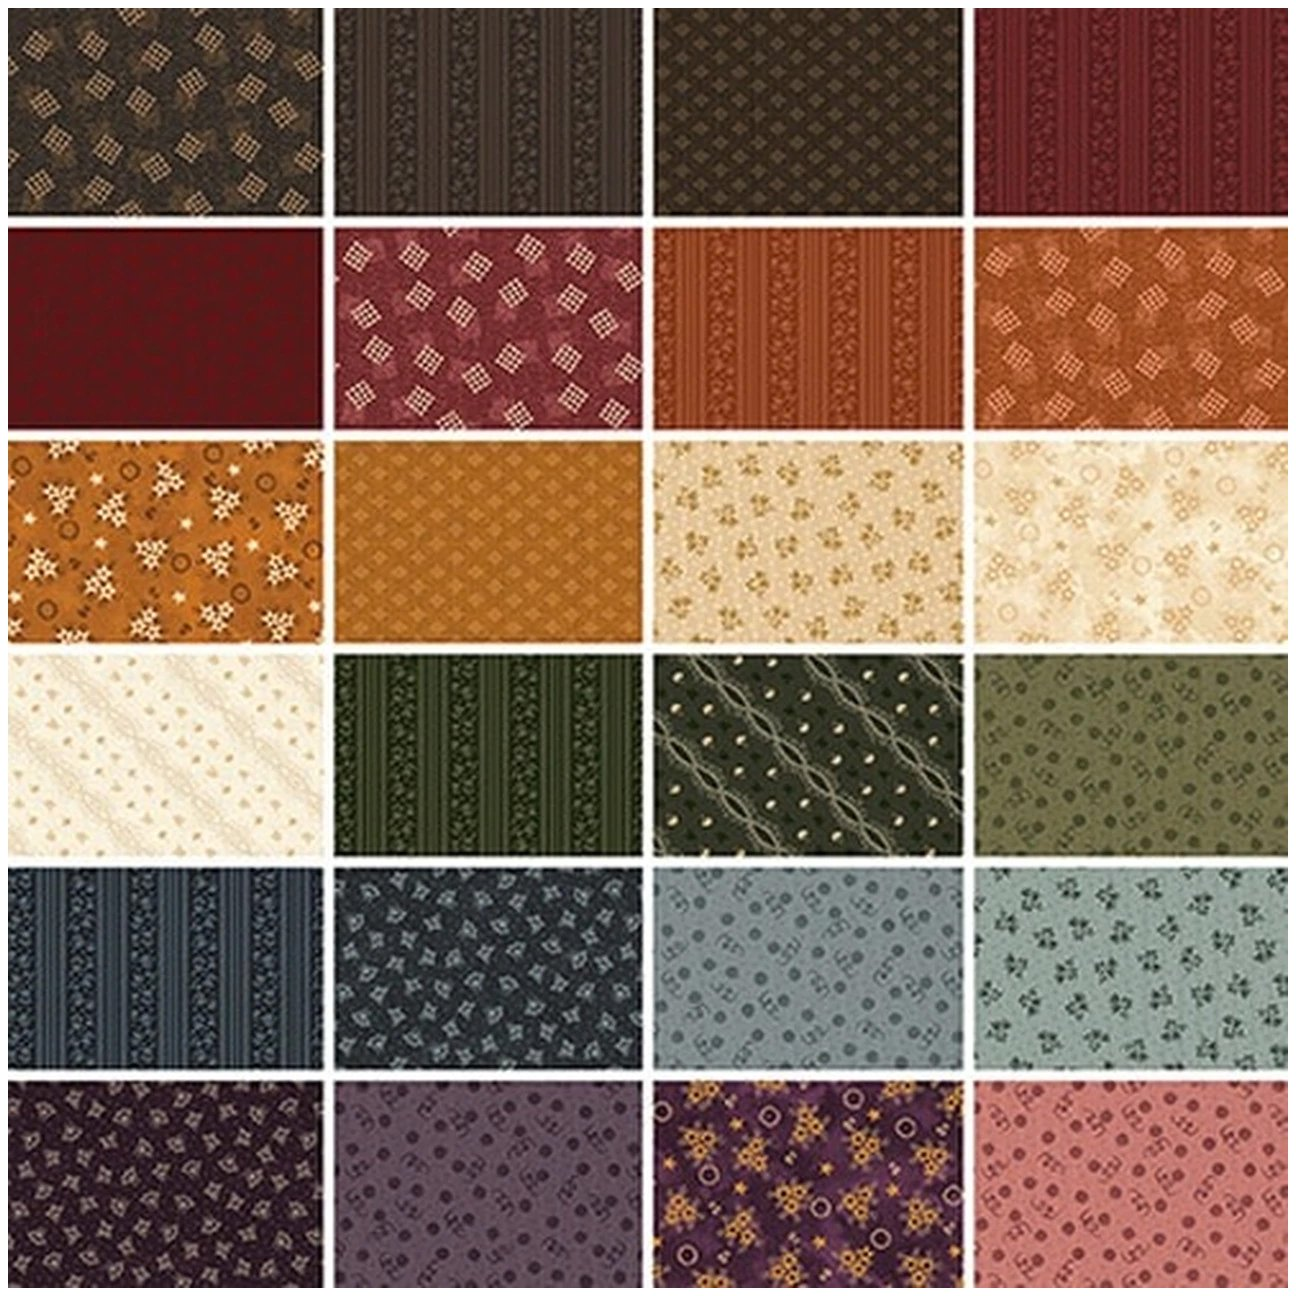 Abby's Treasures Complete Fat Quarter Bundle